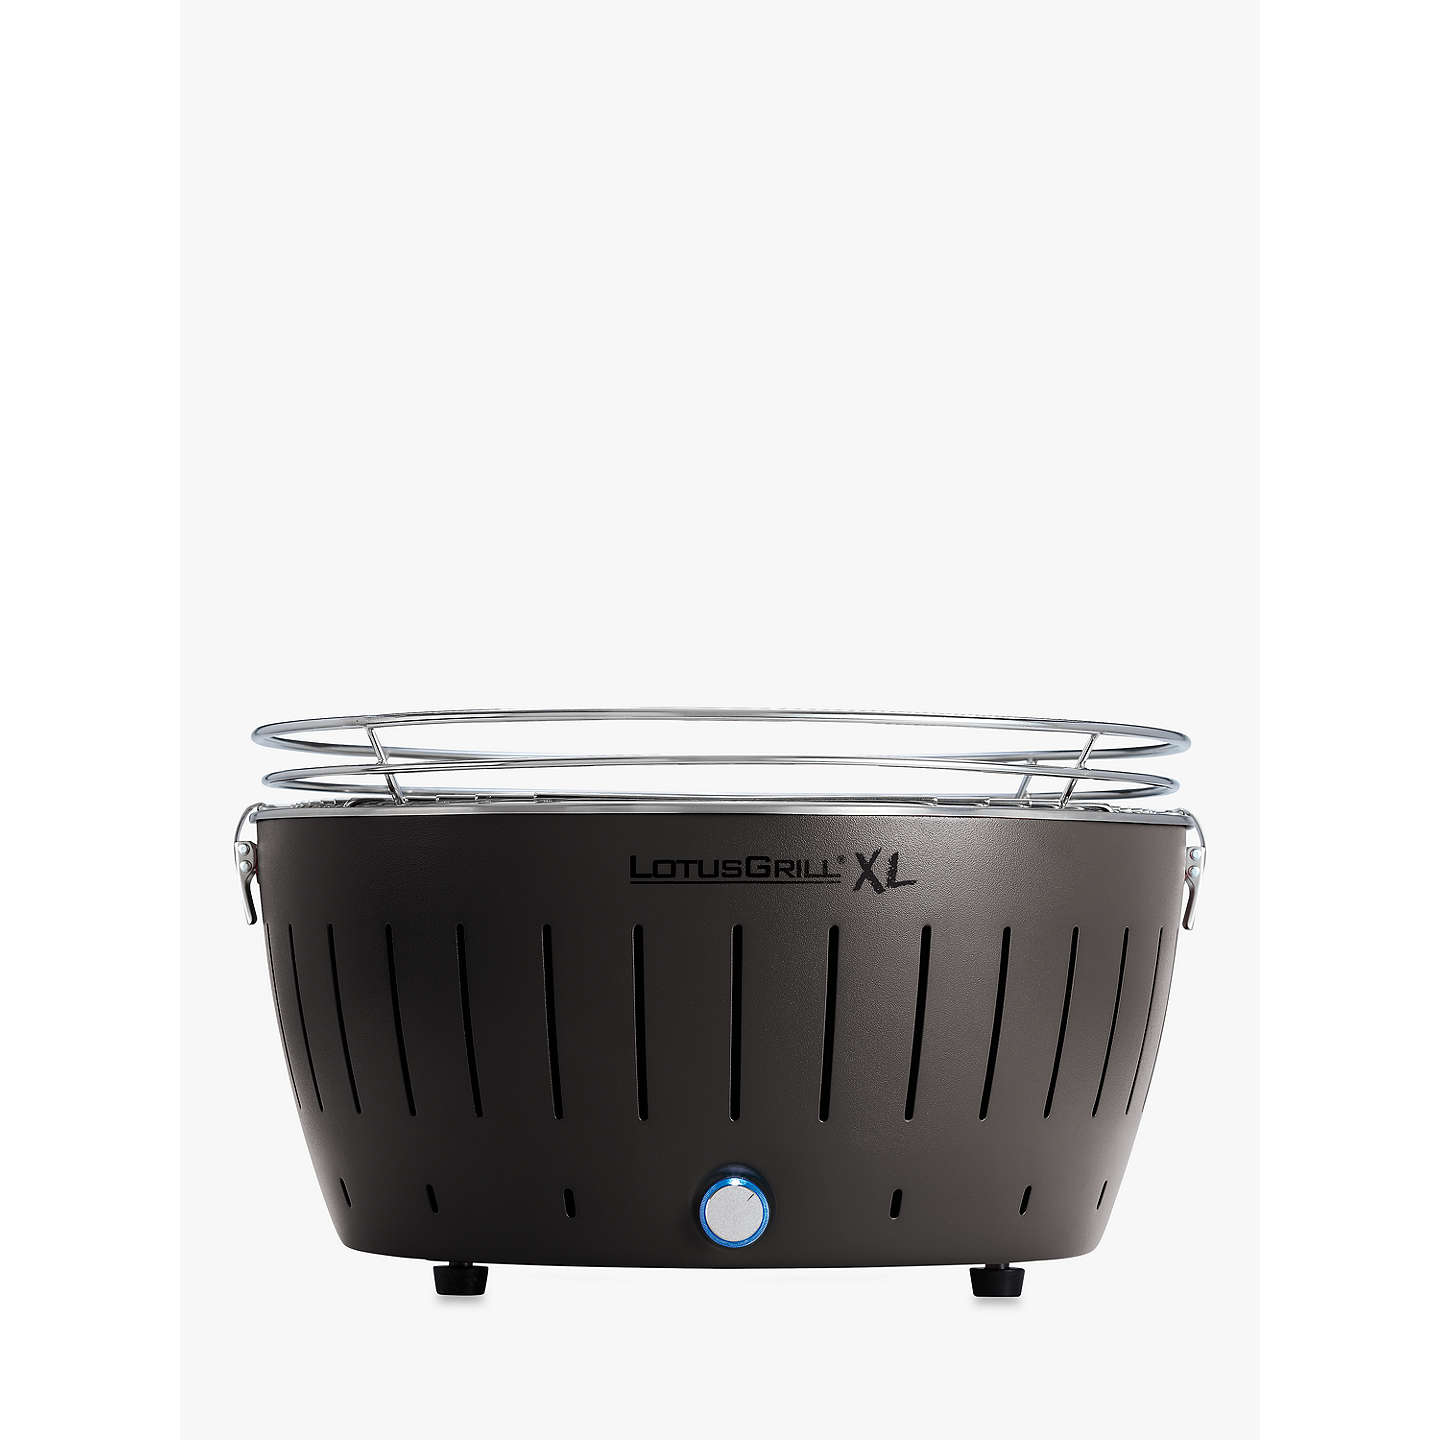 lotusgrill xl g an 435 smokeless charcoal grill bbq grey at john lewis. Black Bedroom Furniture Sets. Home Design Ideas